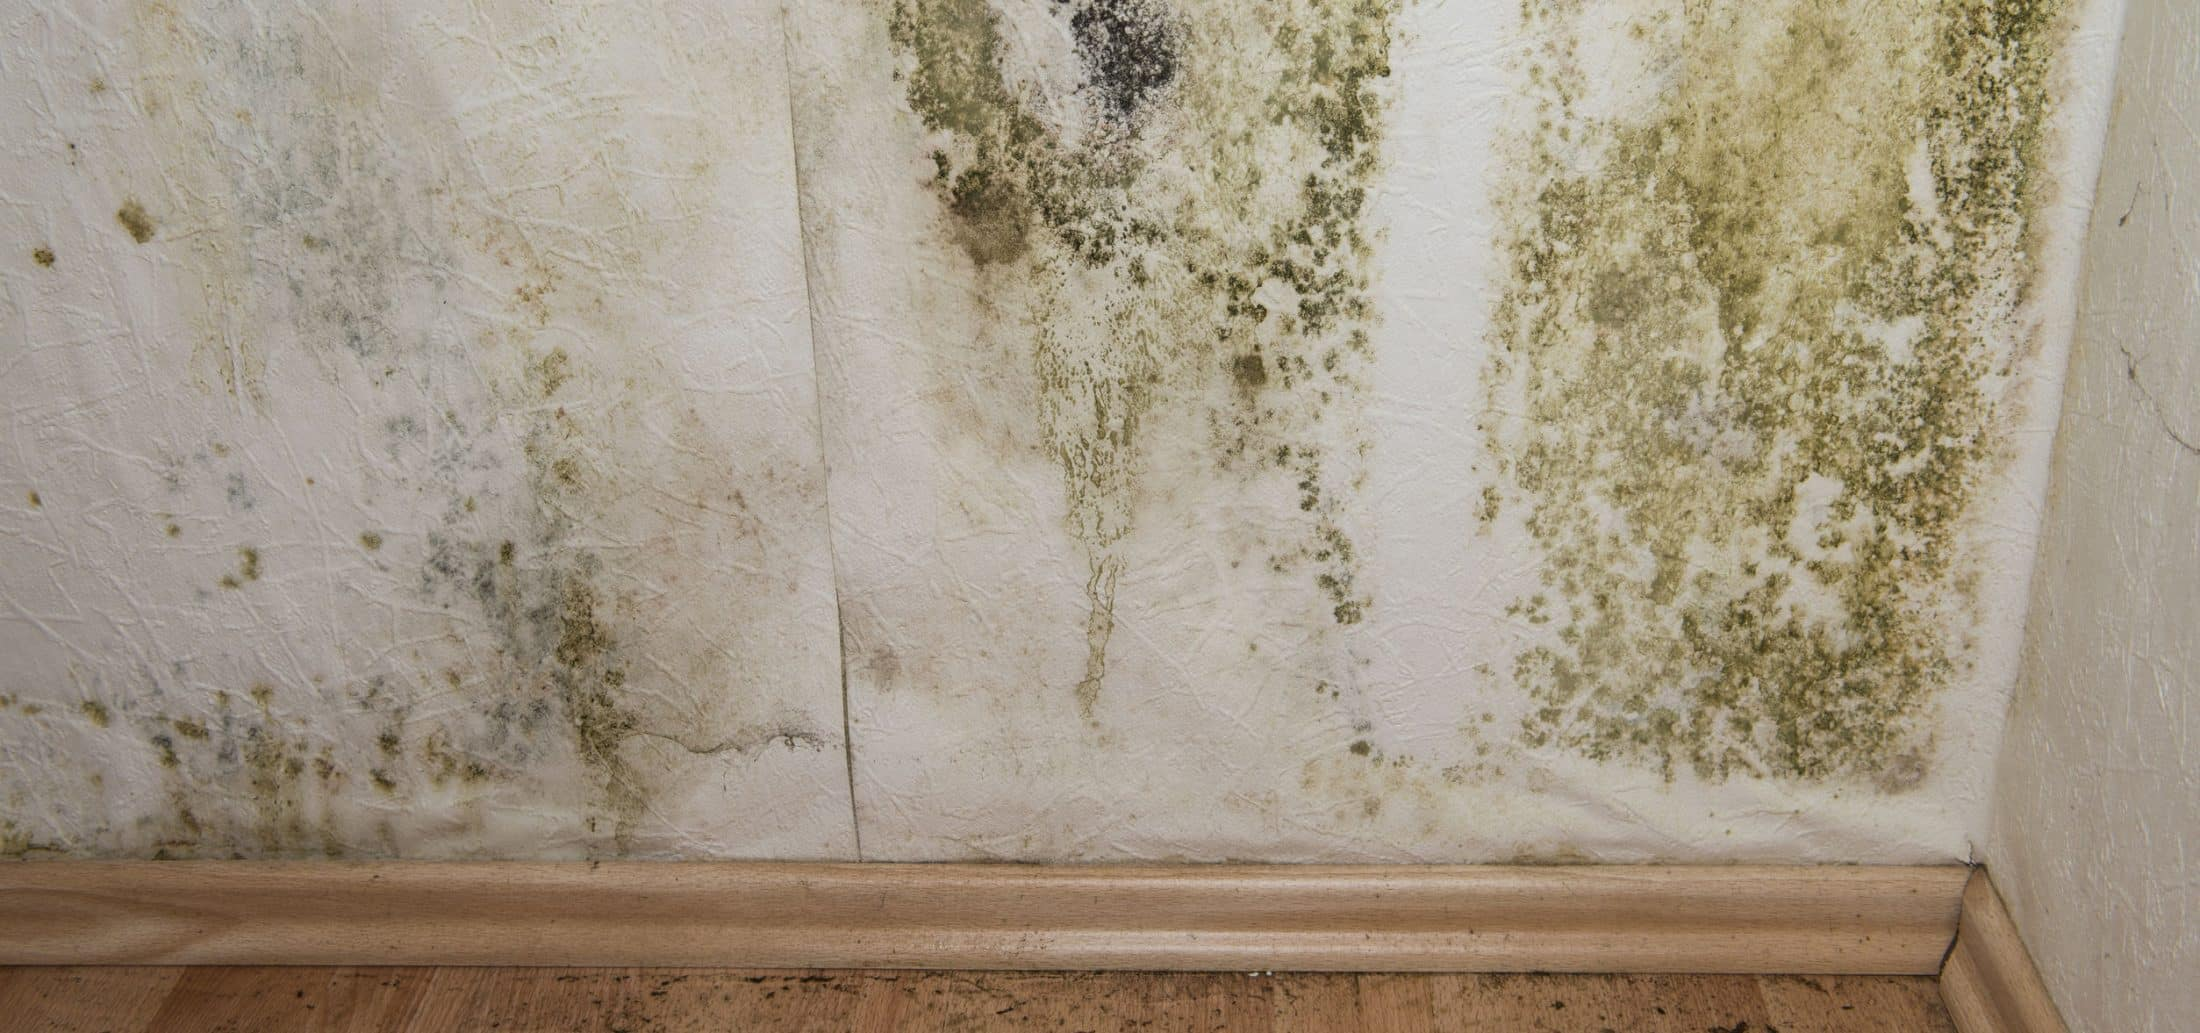 Mold growing on drywall